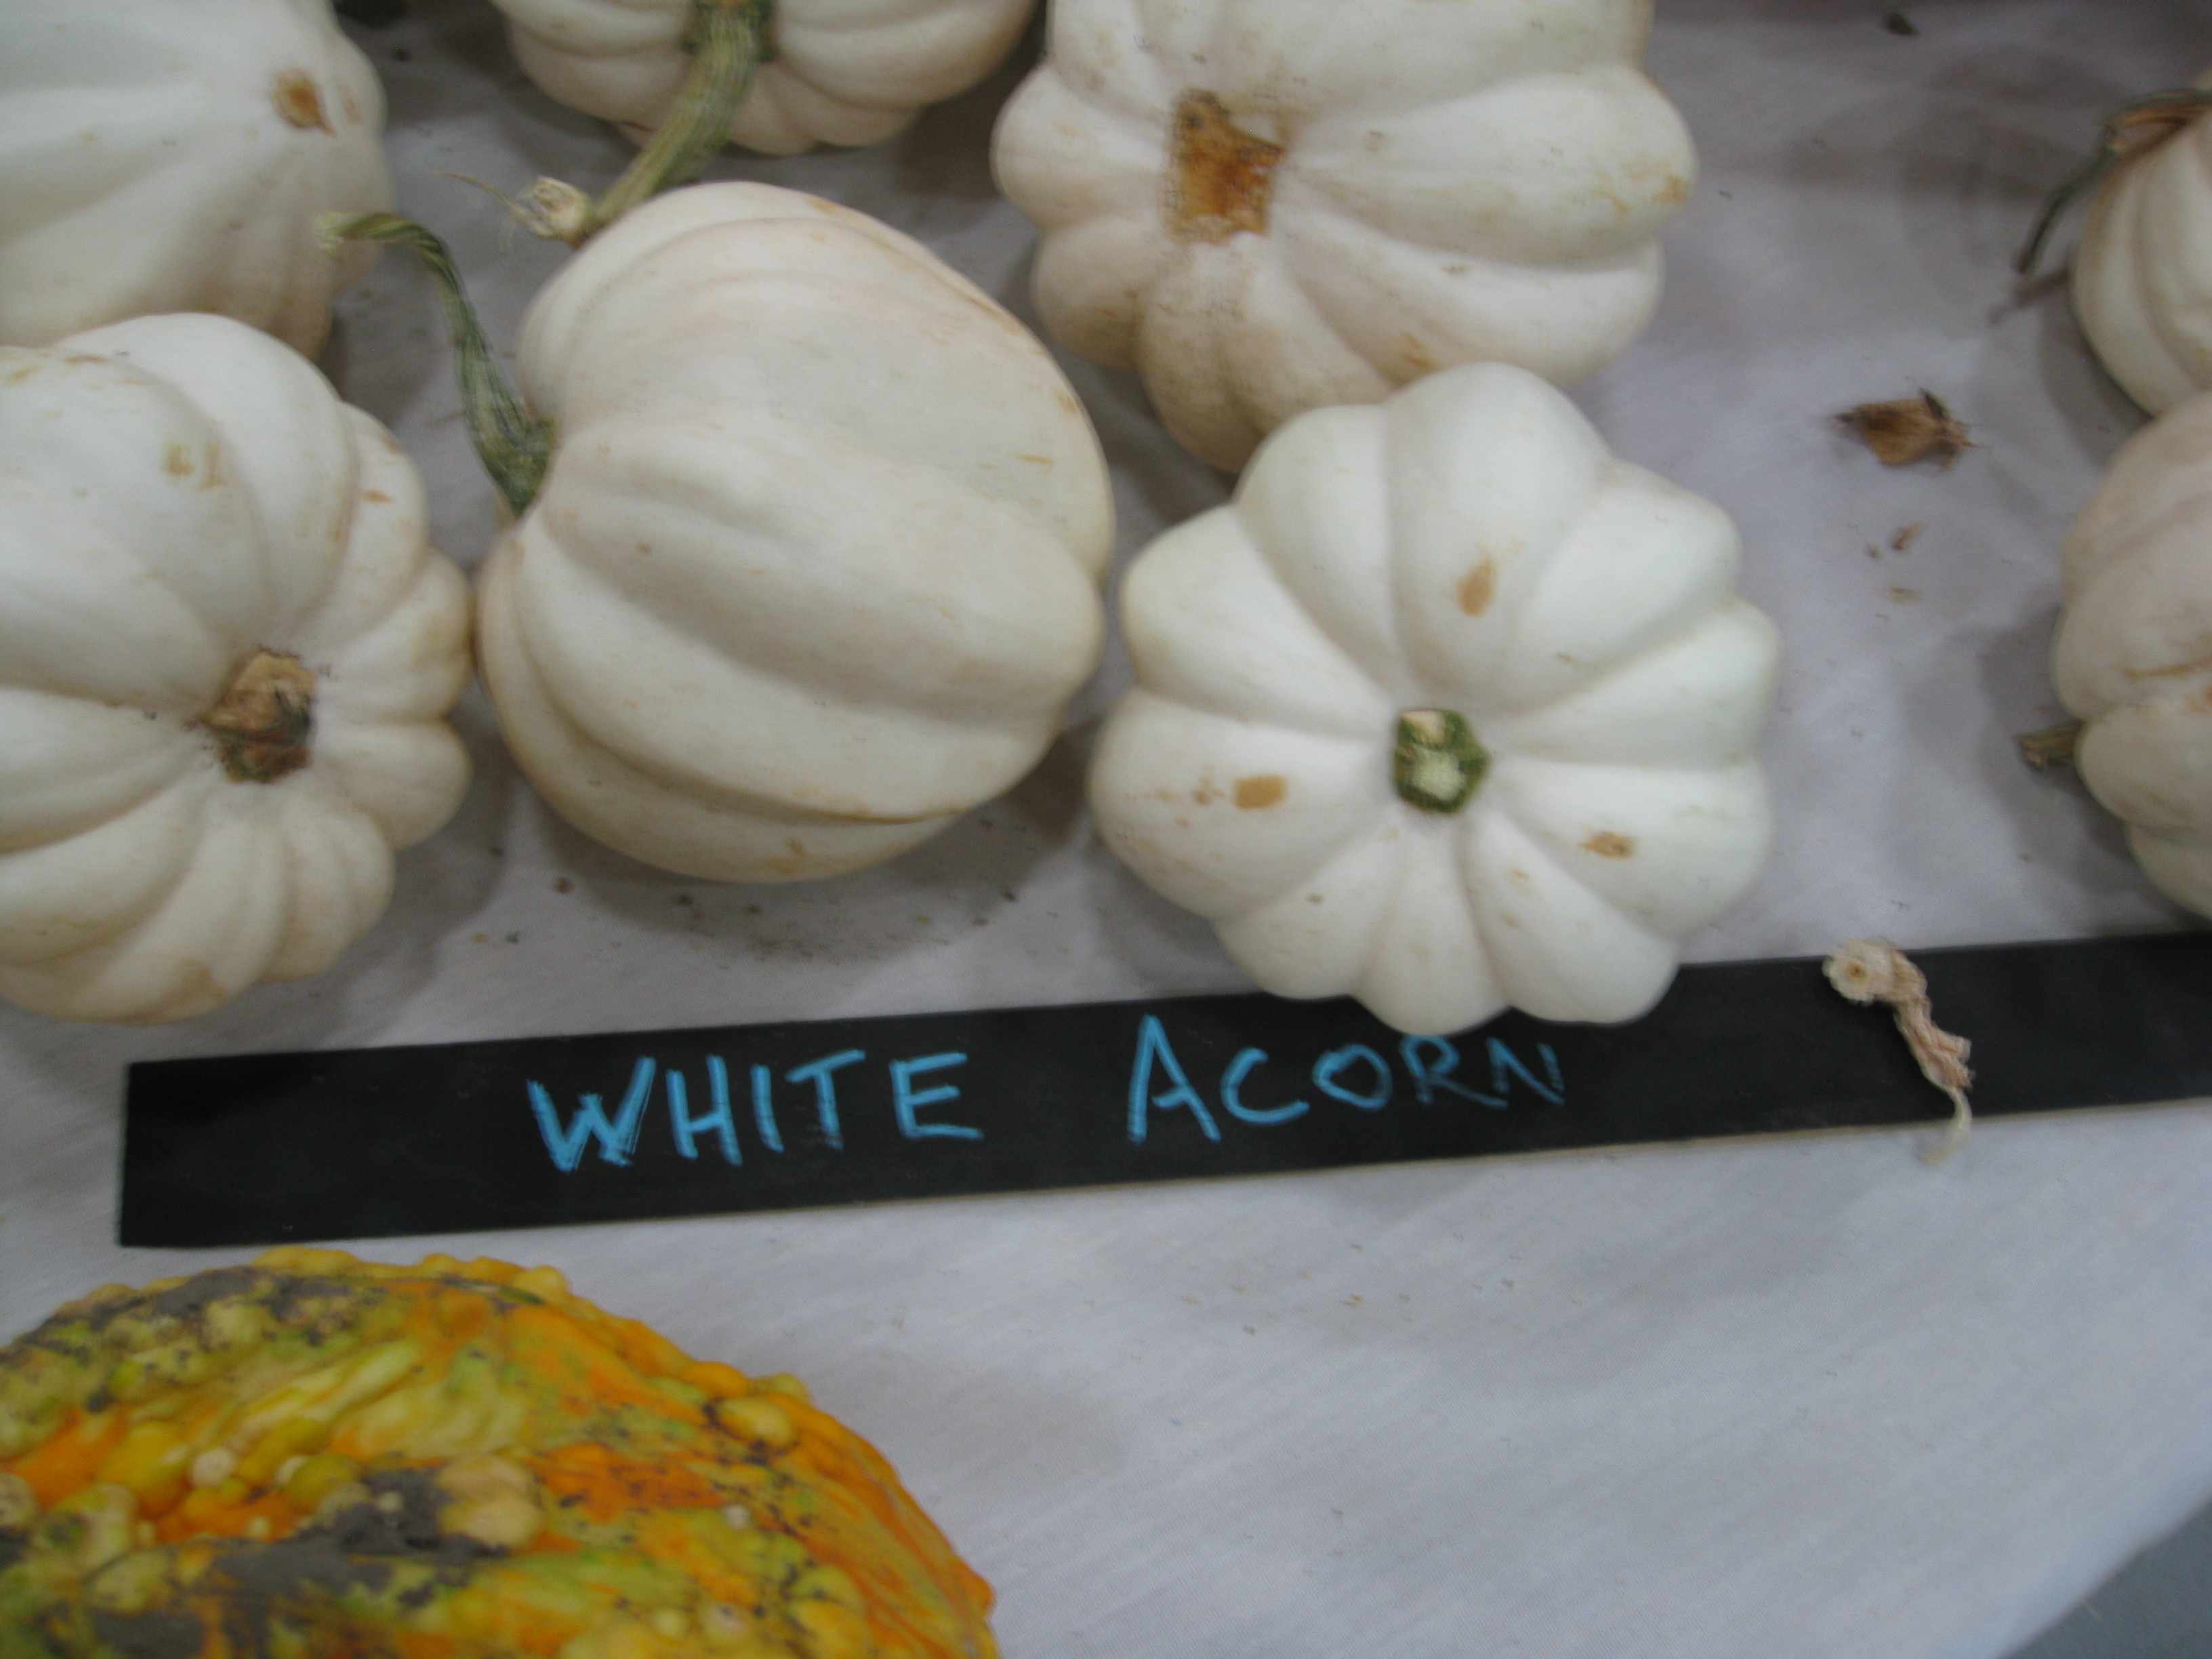 Our blurry photo of White Acorn Squash was taken in haste.